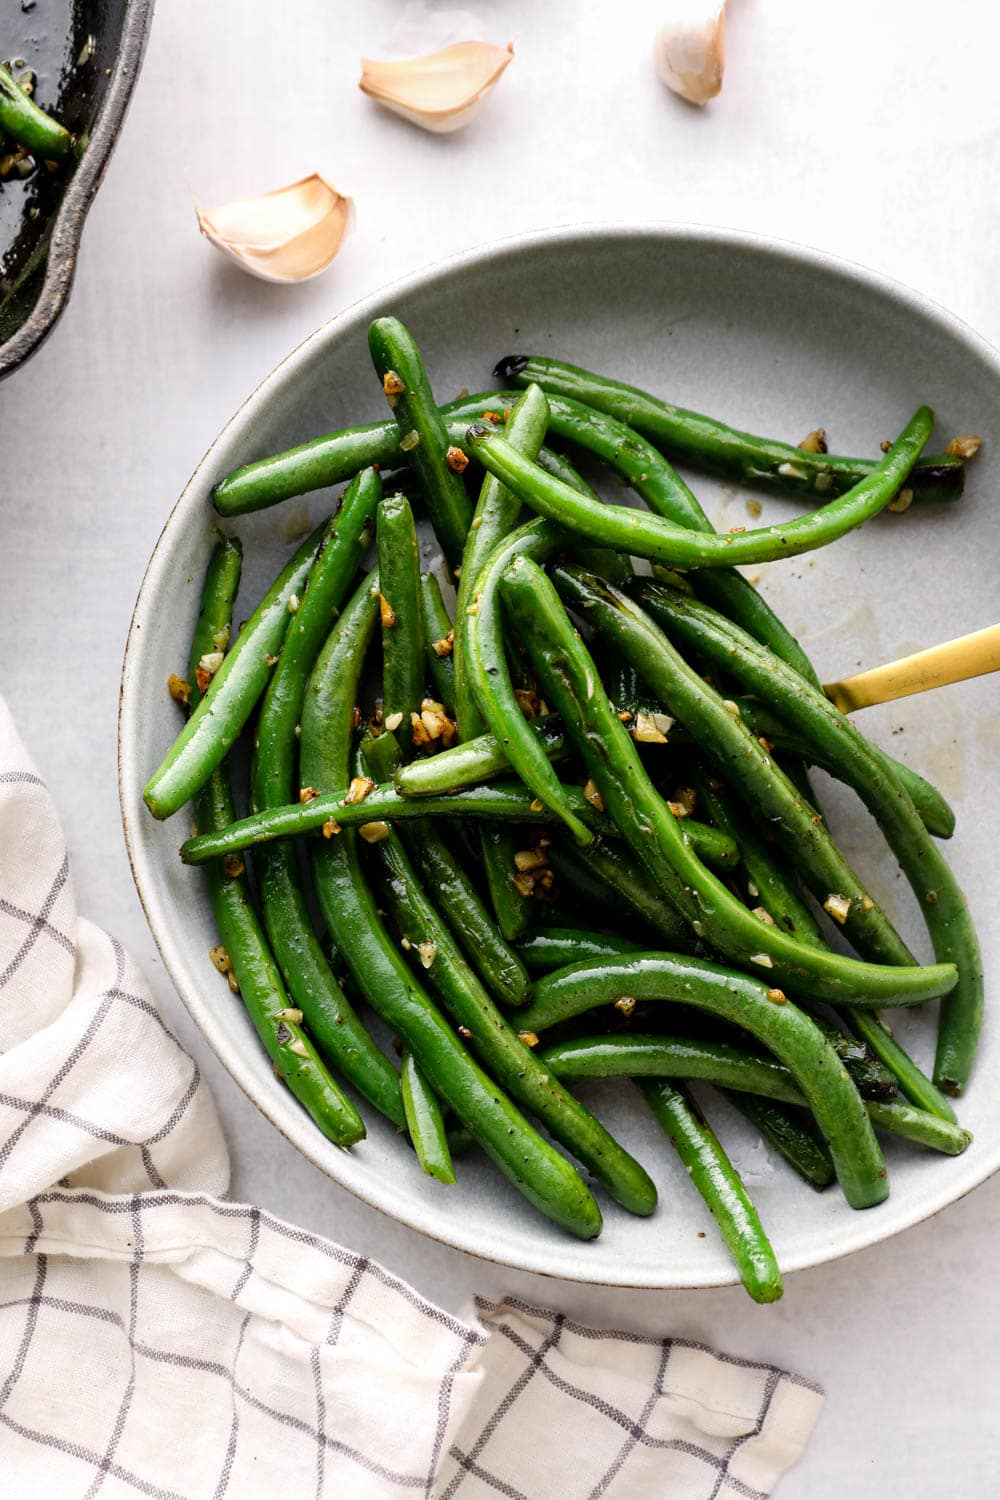 Garlic Green Beans in a bowl.